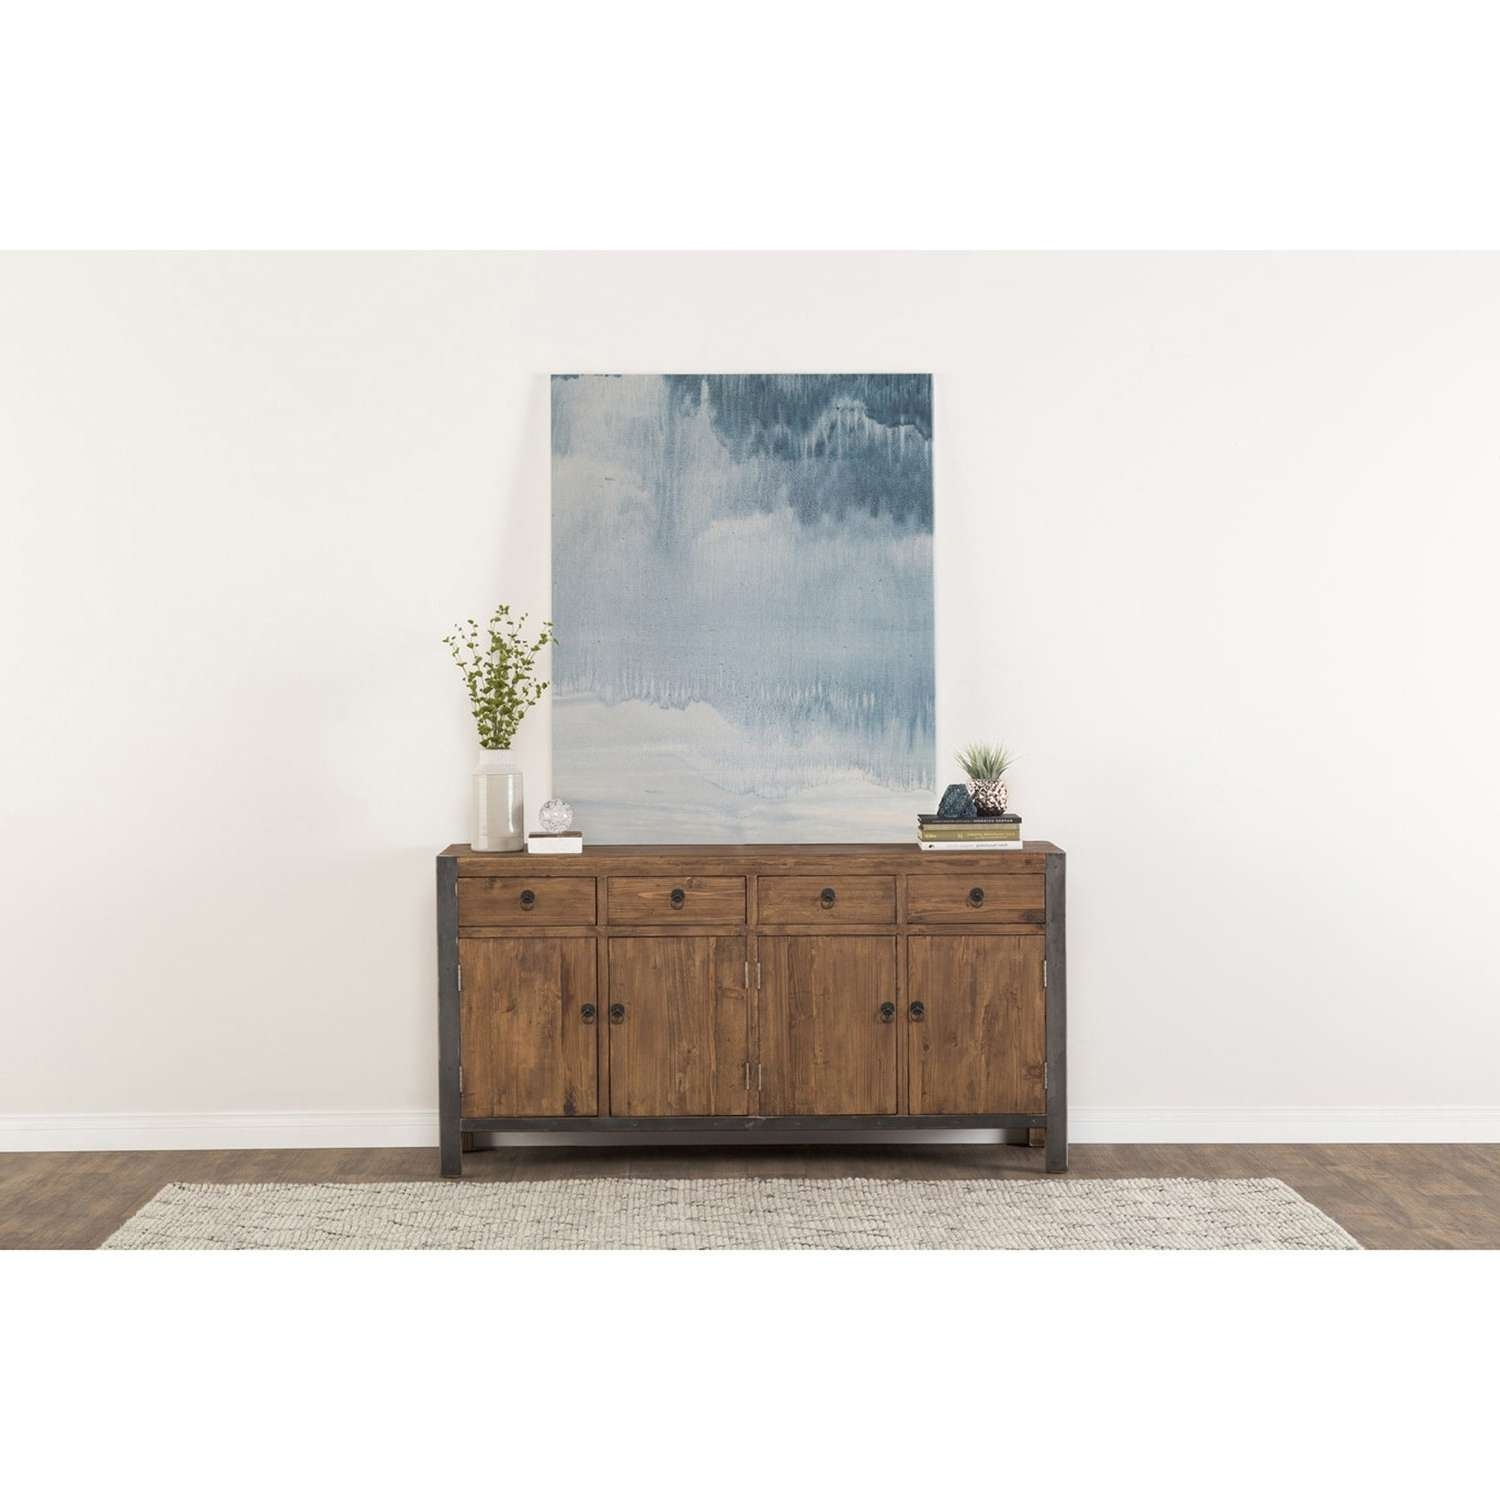 Willow Reclaimed Wood And Iron 70 Inch Buffetkosas Home – Free With Regard To 70 Inch Sideboards (View 11 of 20)